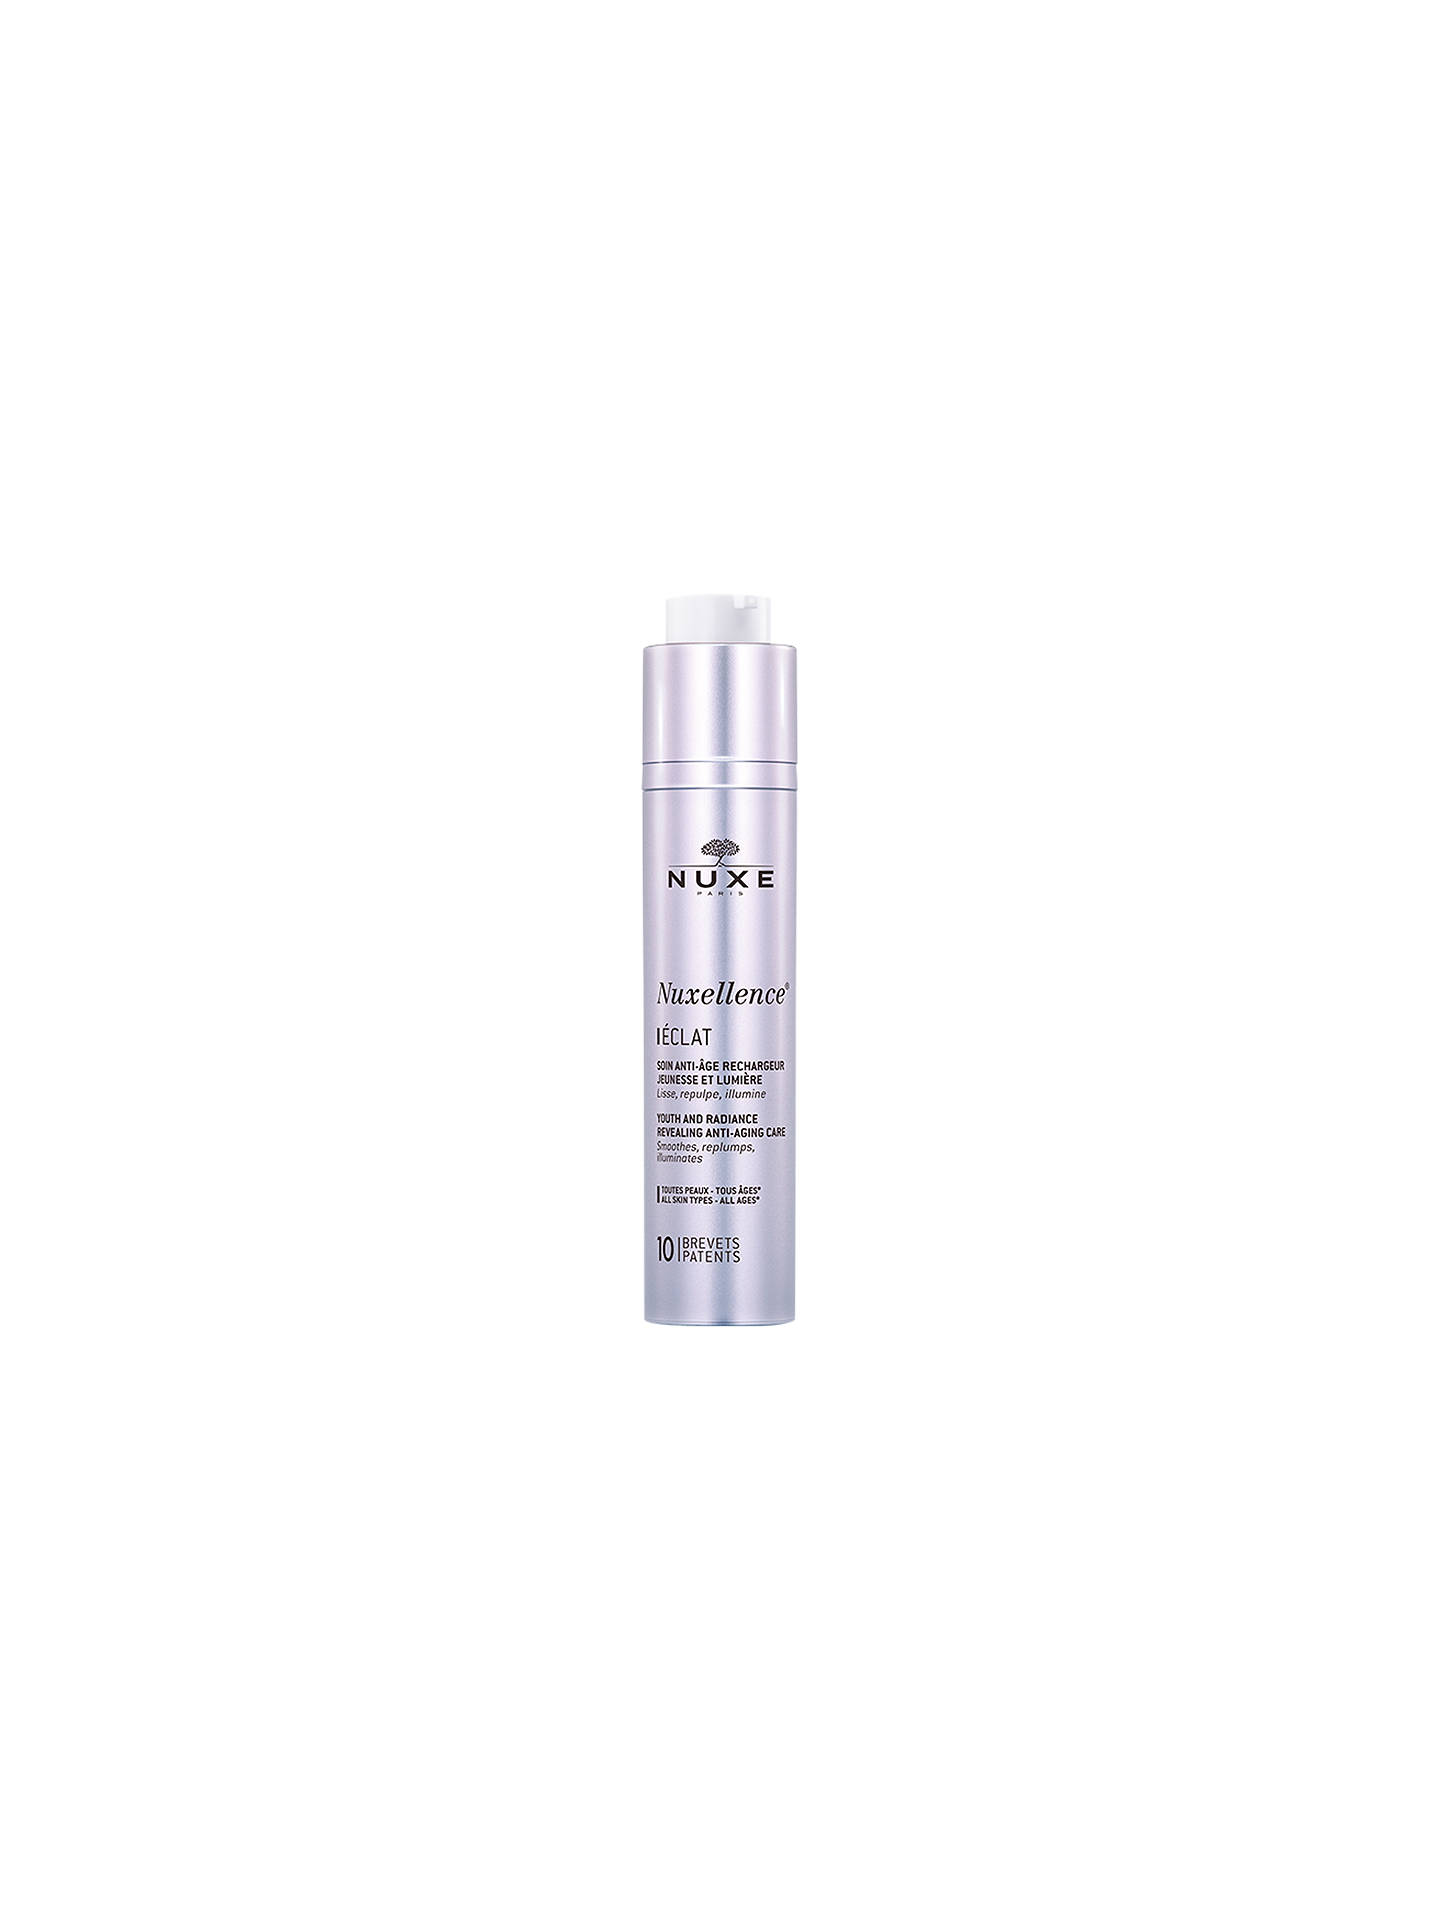 Buy NUXE Nuxellence® Eclat Anti-Ageing and Radiance Revealing Day Care, 50ml Online at johnlewis.com